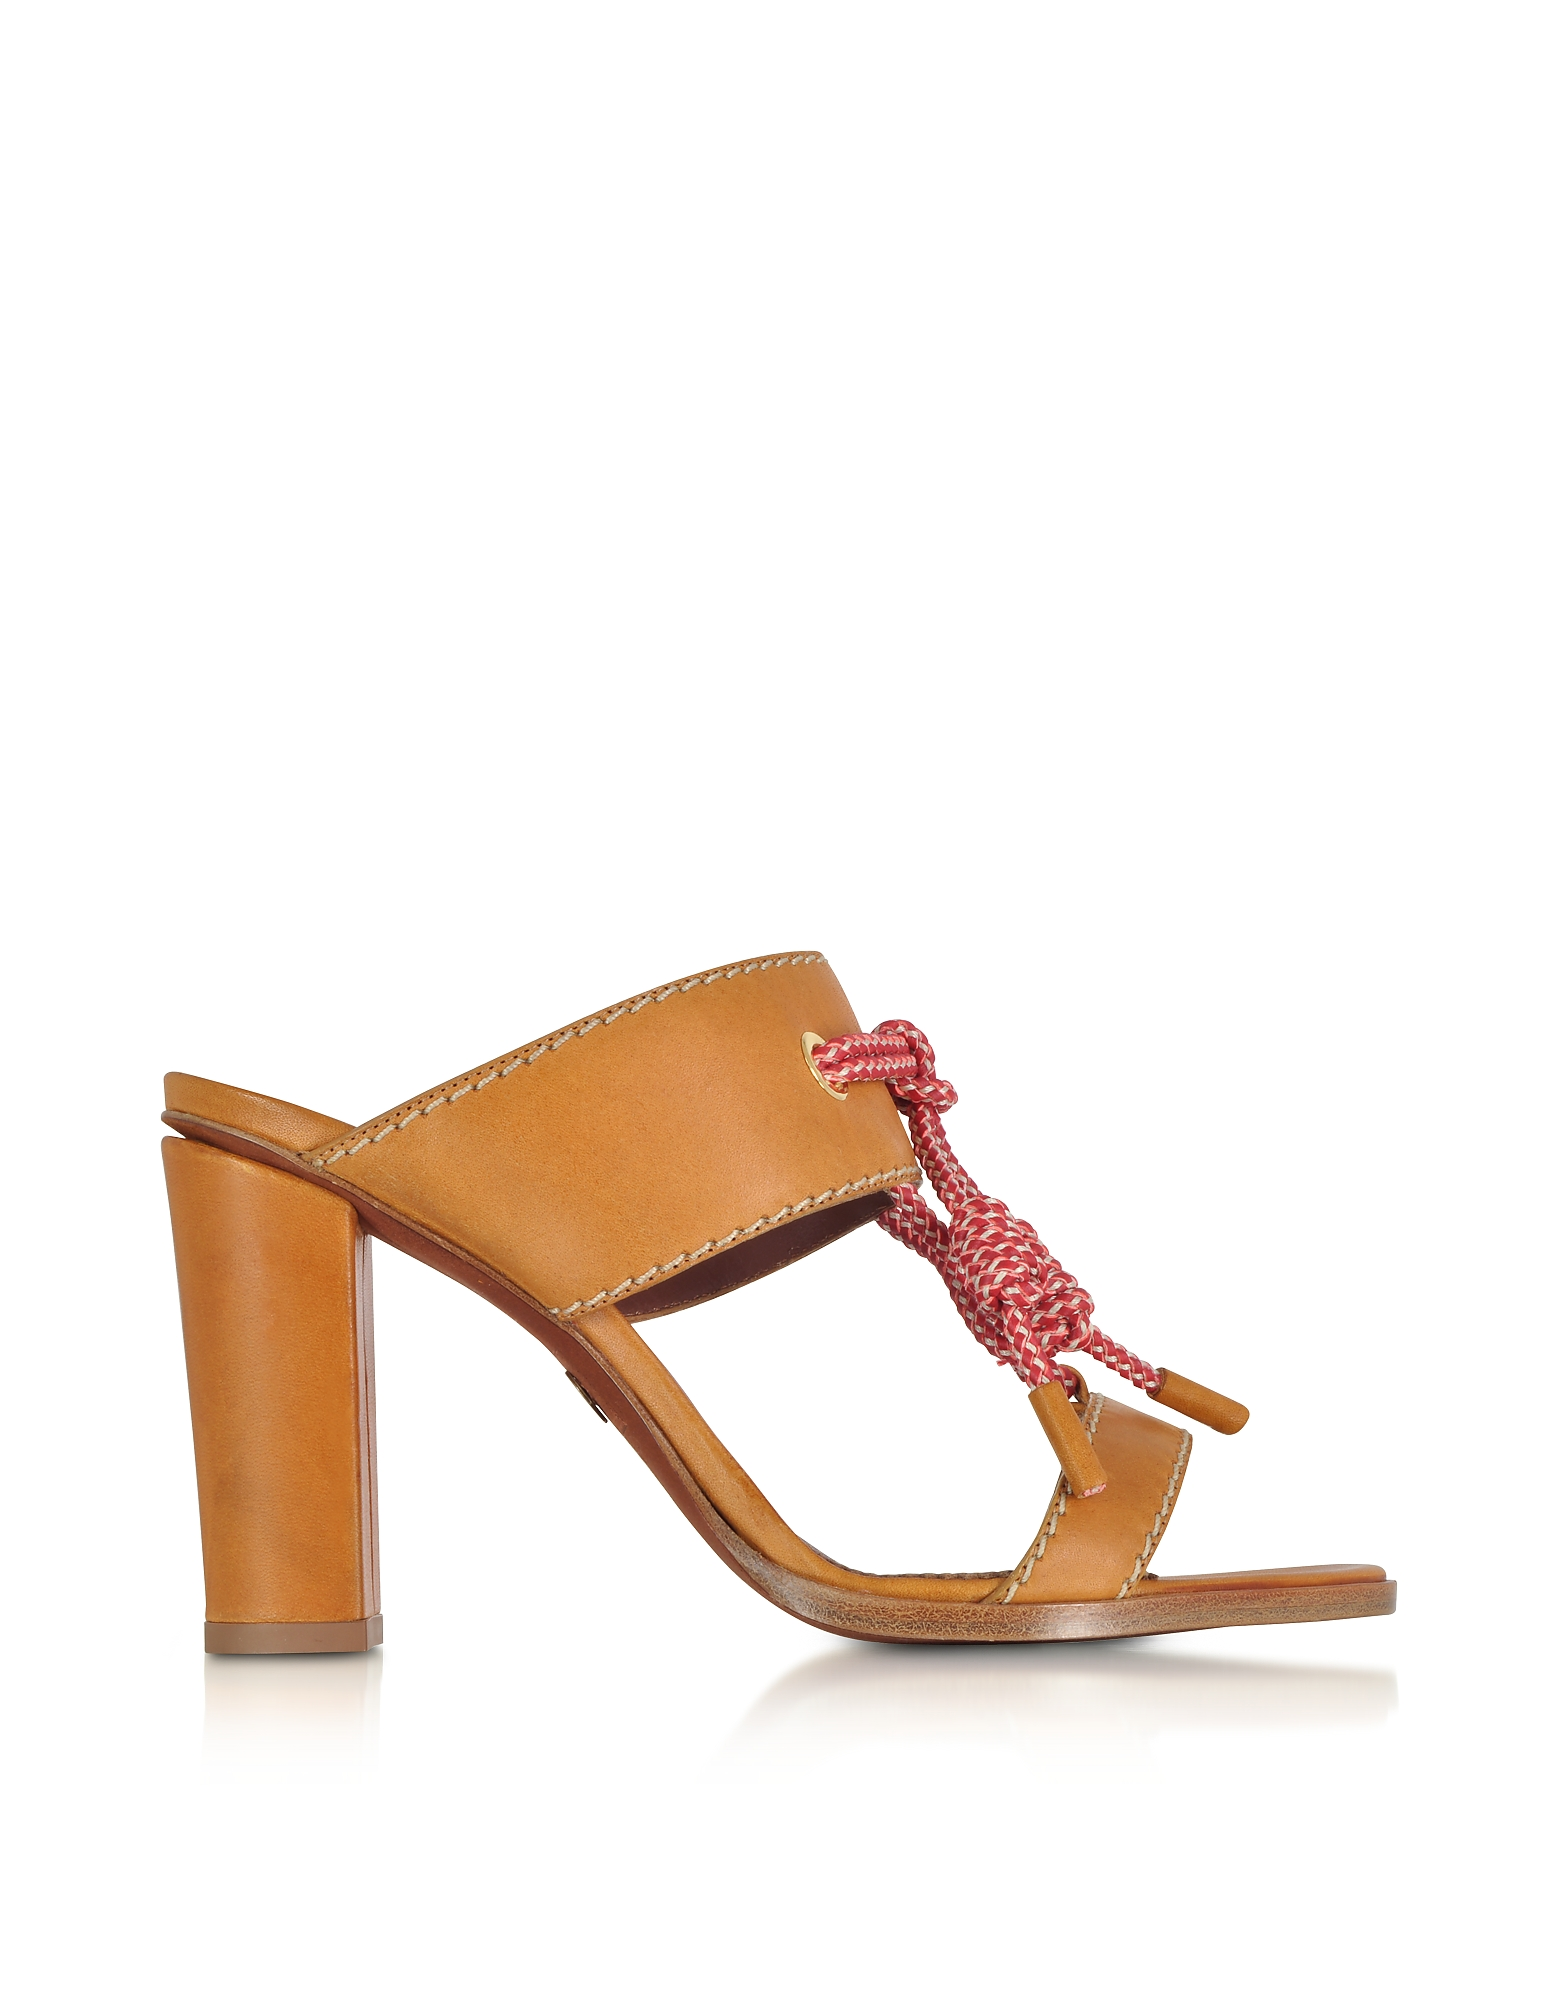 DSquared2 Shoes, Camel Leather High Heel Sandals